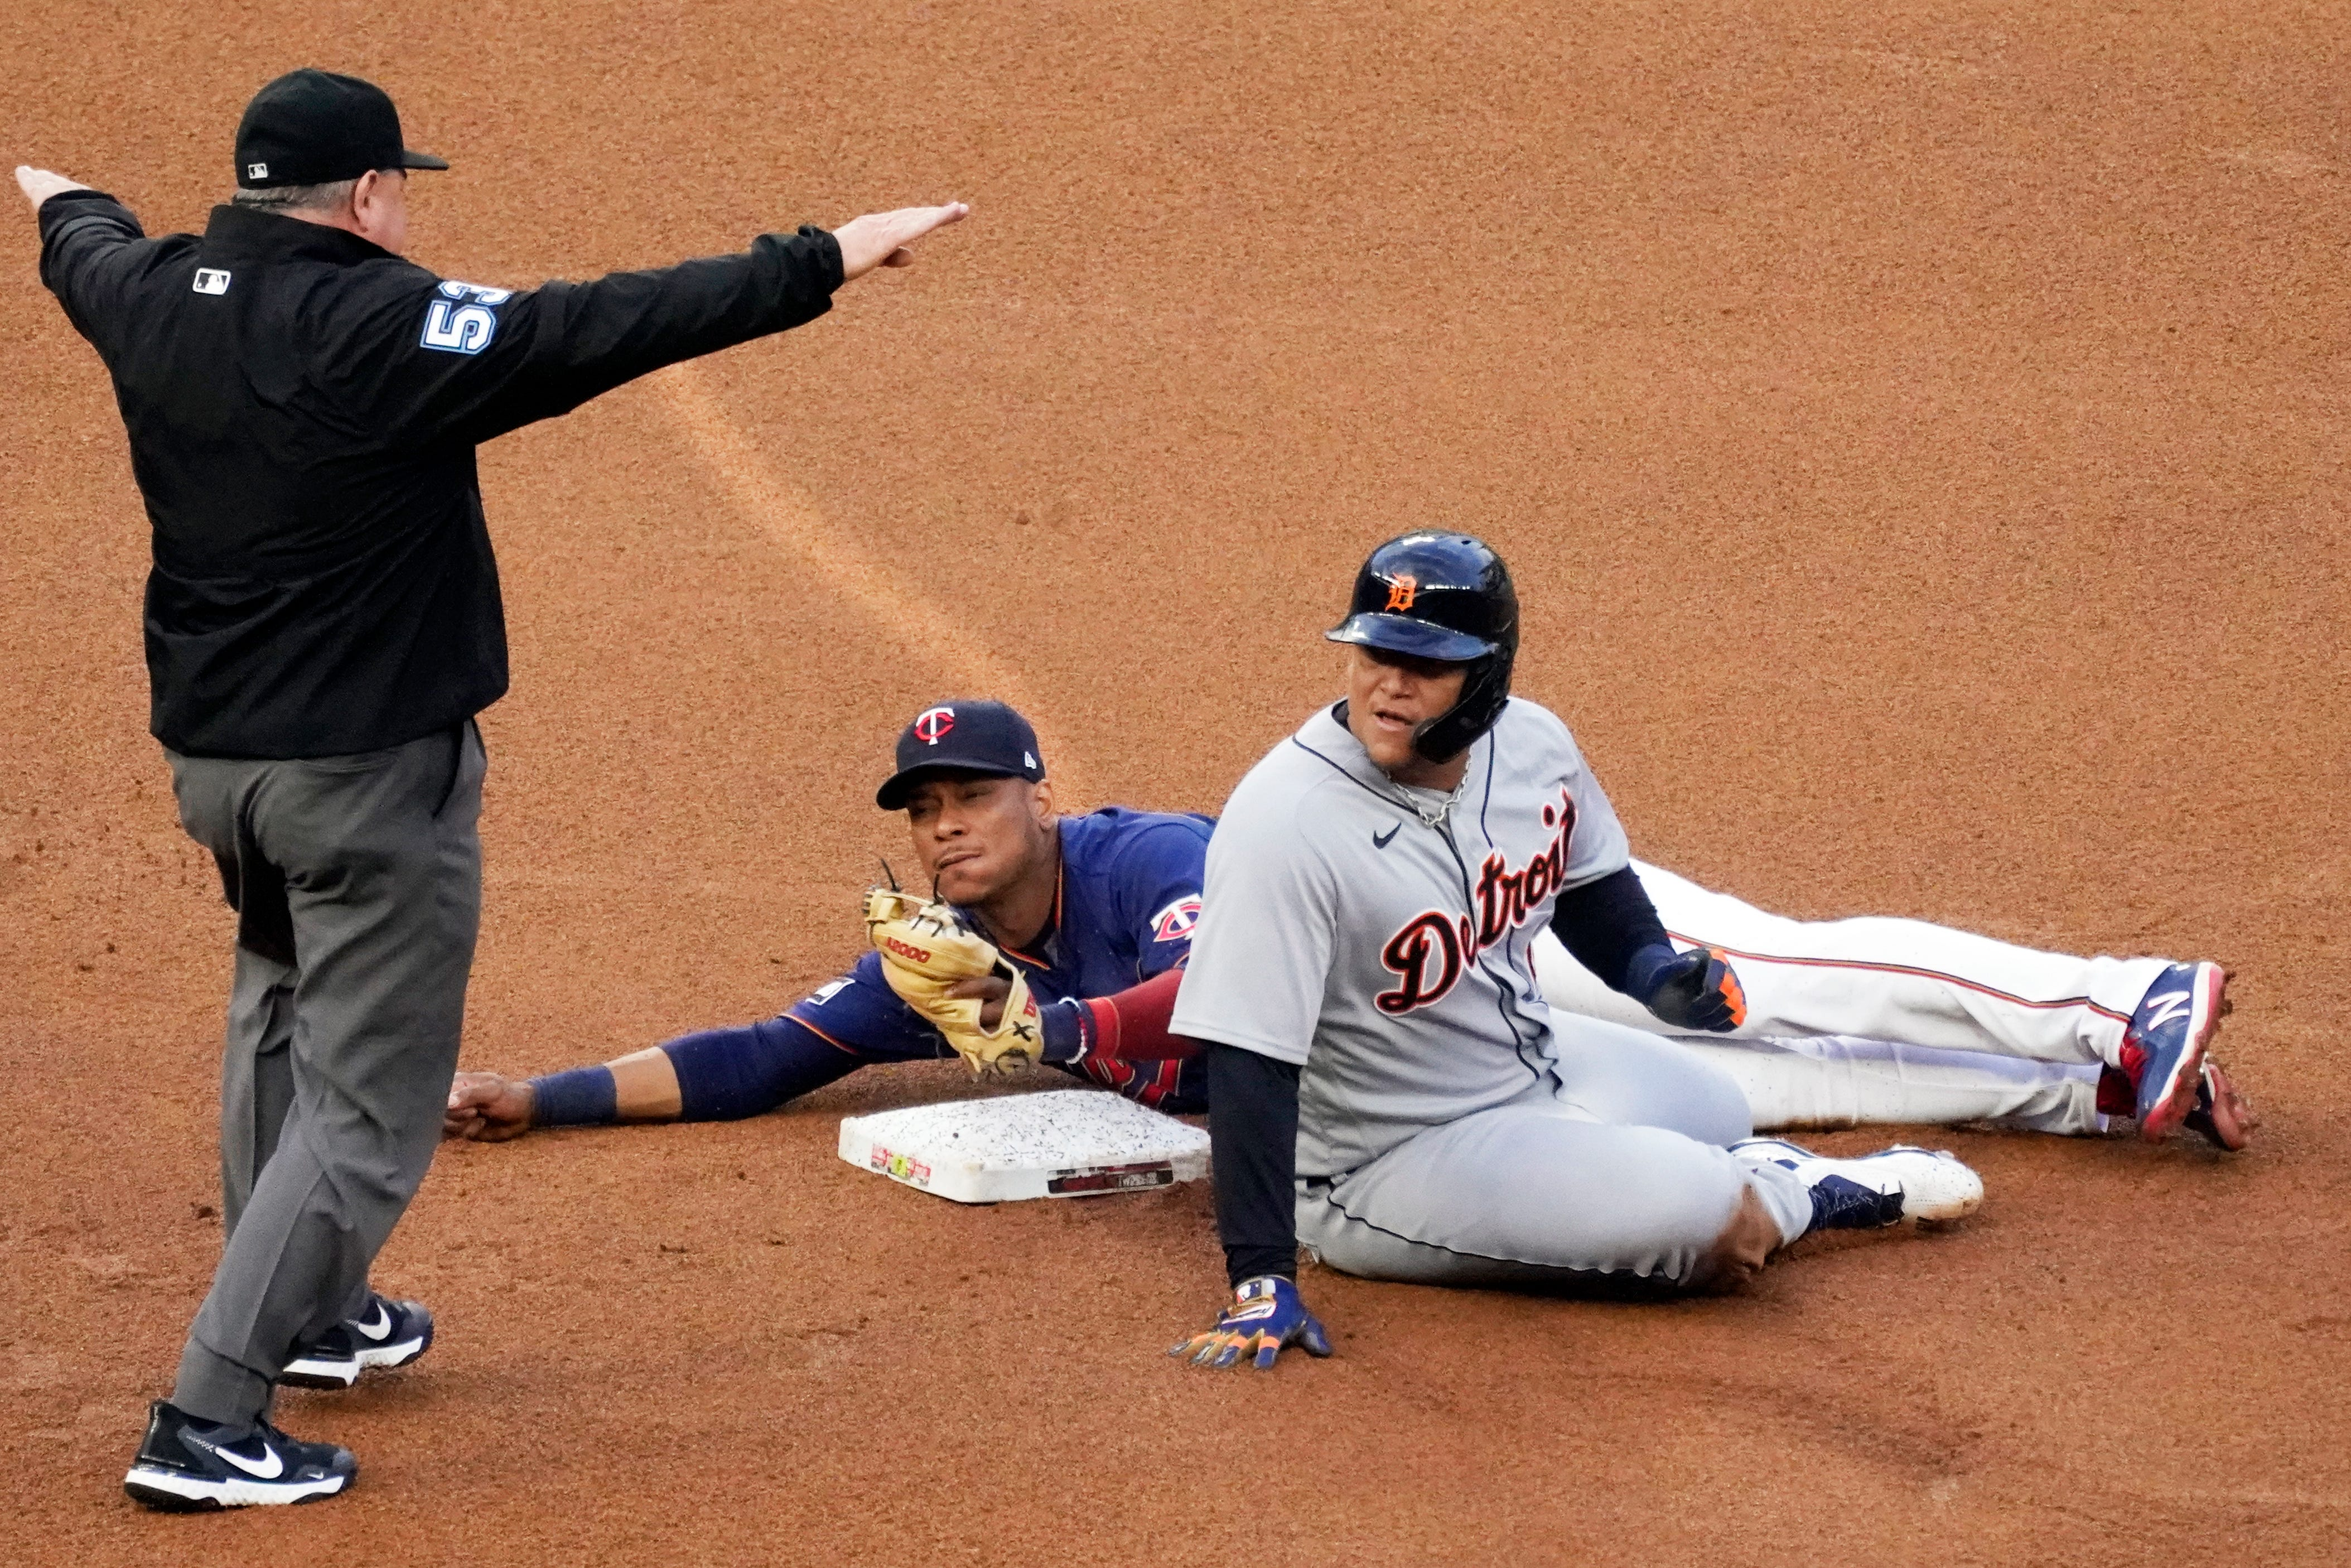 Detroit Tigers lack sharpness, and pay for it in 5-3 loss